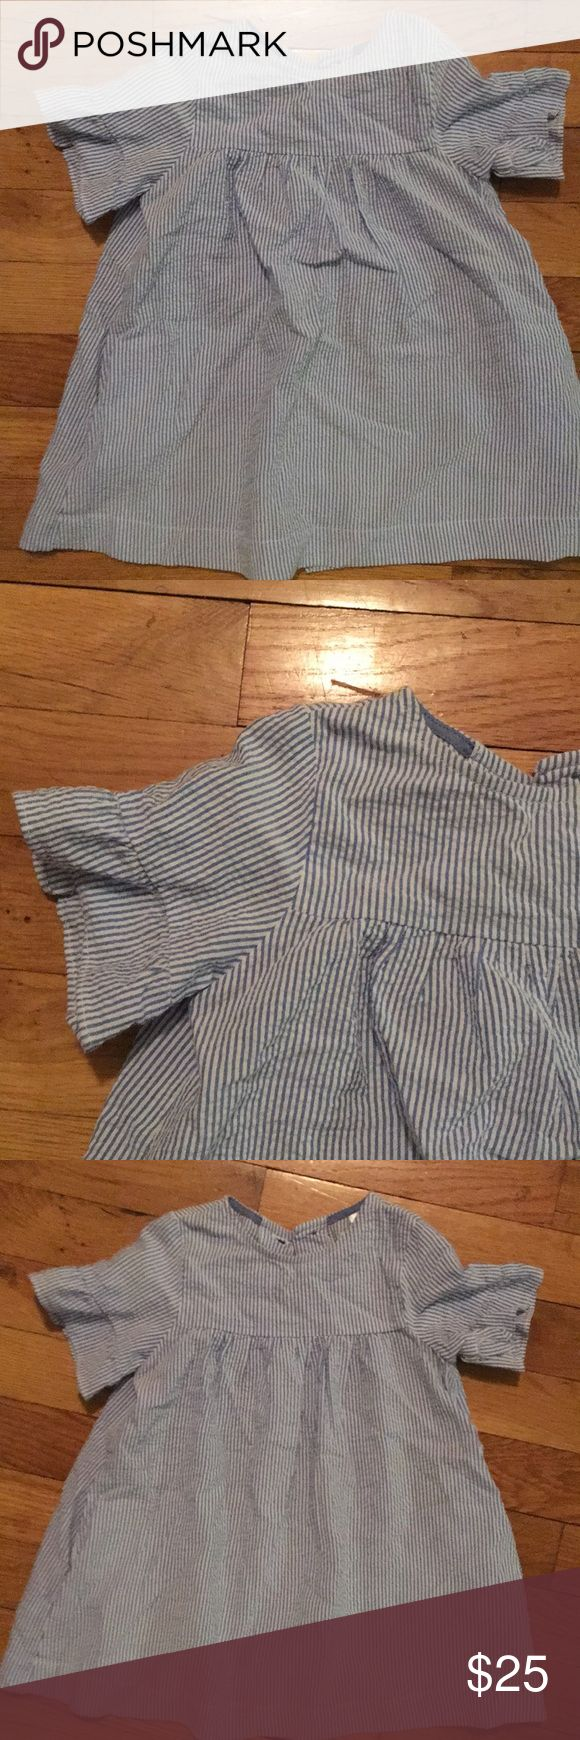 Seersucker toddler dress Only worn once, a little wrinkled from storage. Cute seersucker baby doll with short fluted sleeves and full button back. Size 2/3 toddler Zara Dresses